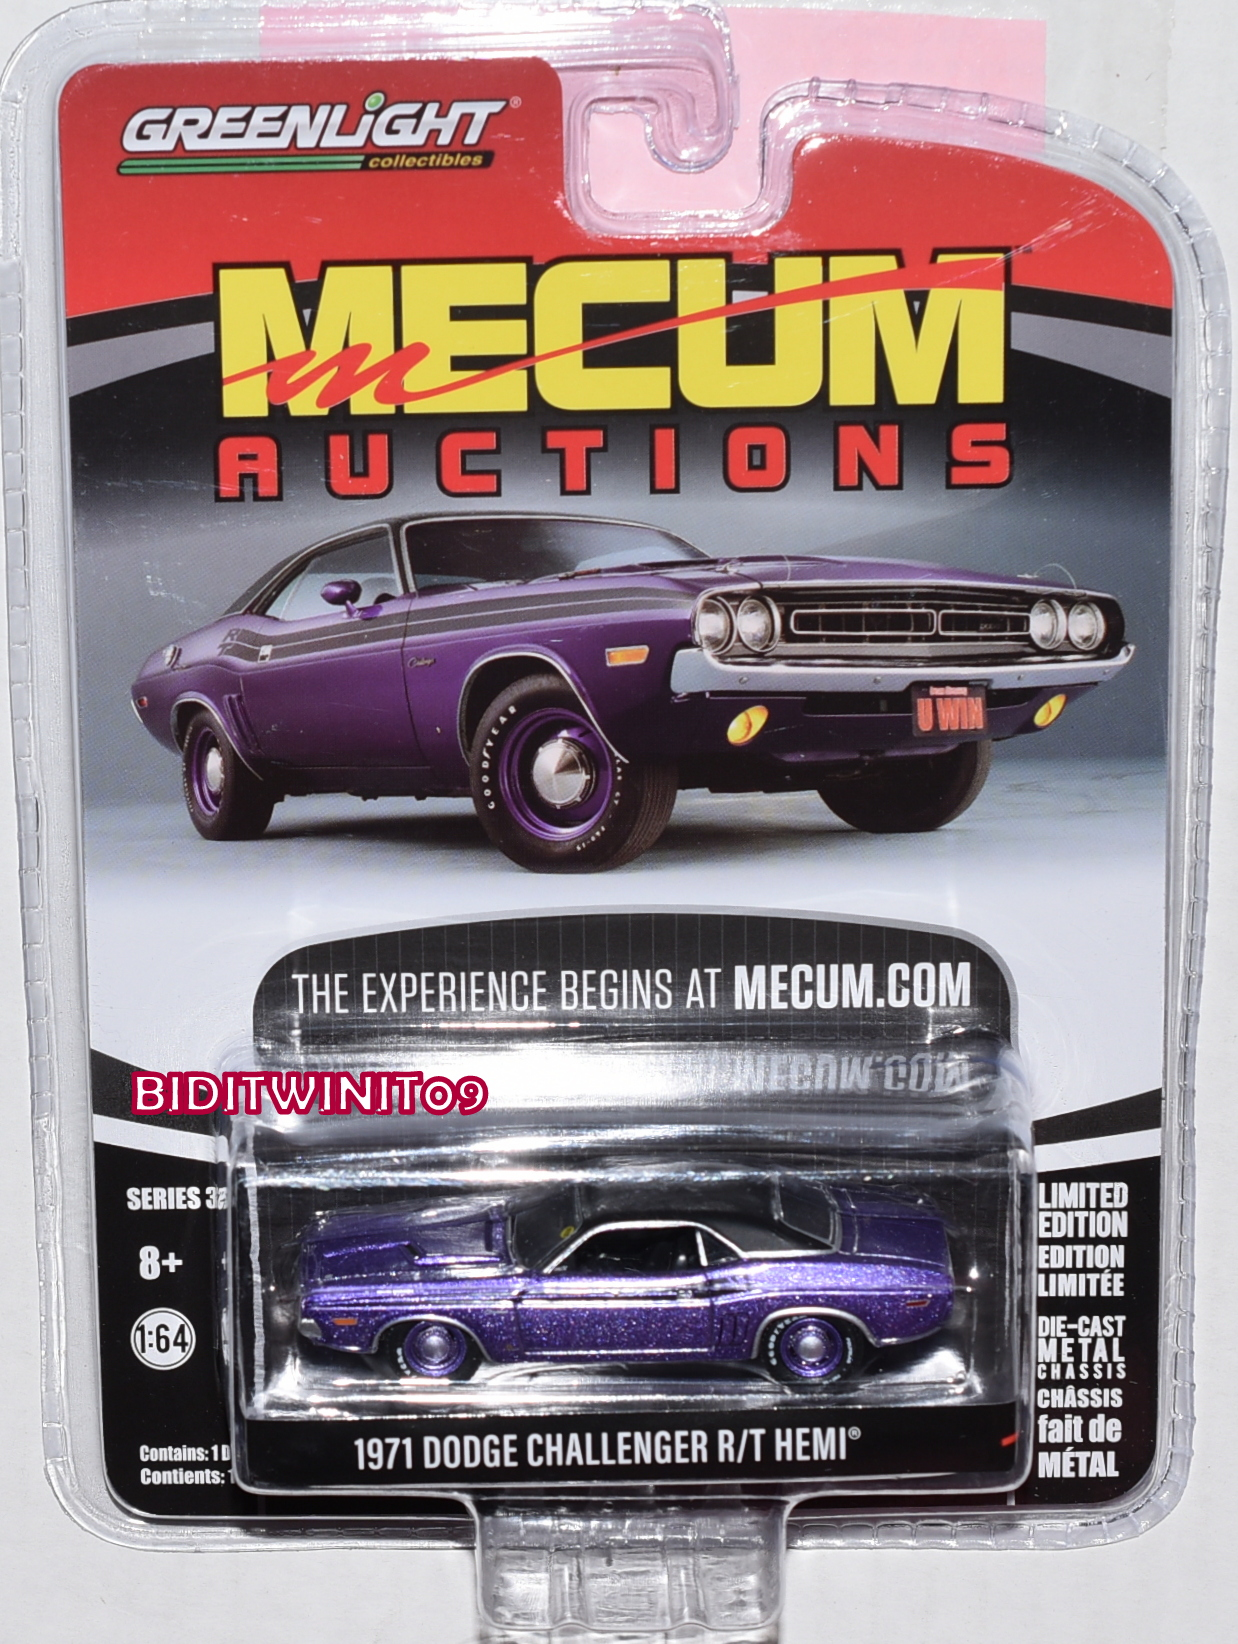 GREENLIGHT MECUM AUCTIONS SERIES 3 1971 DODGE HEMI CHALLENGER R/T